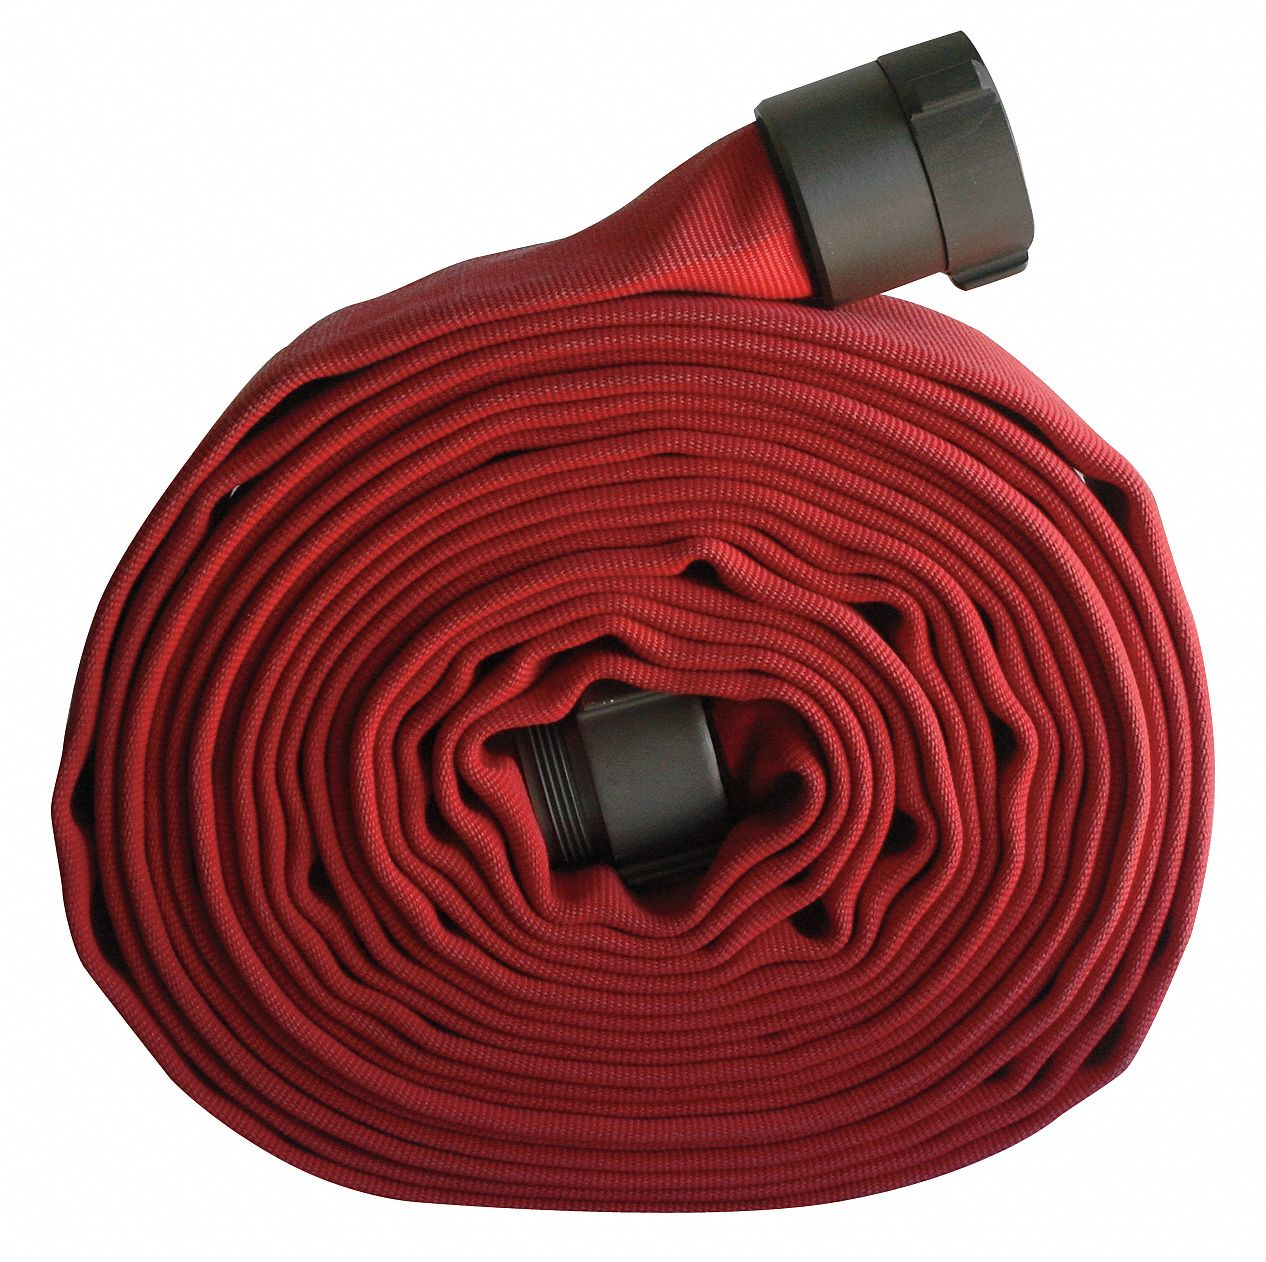 ARMORED TEXTILES Supply Line Fire Hose, Double Jacket, 5